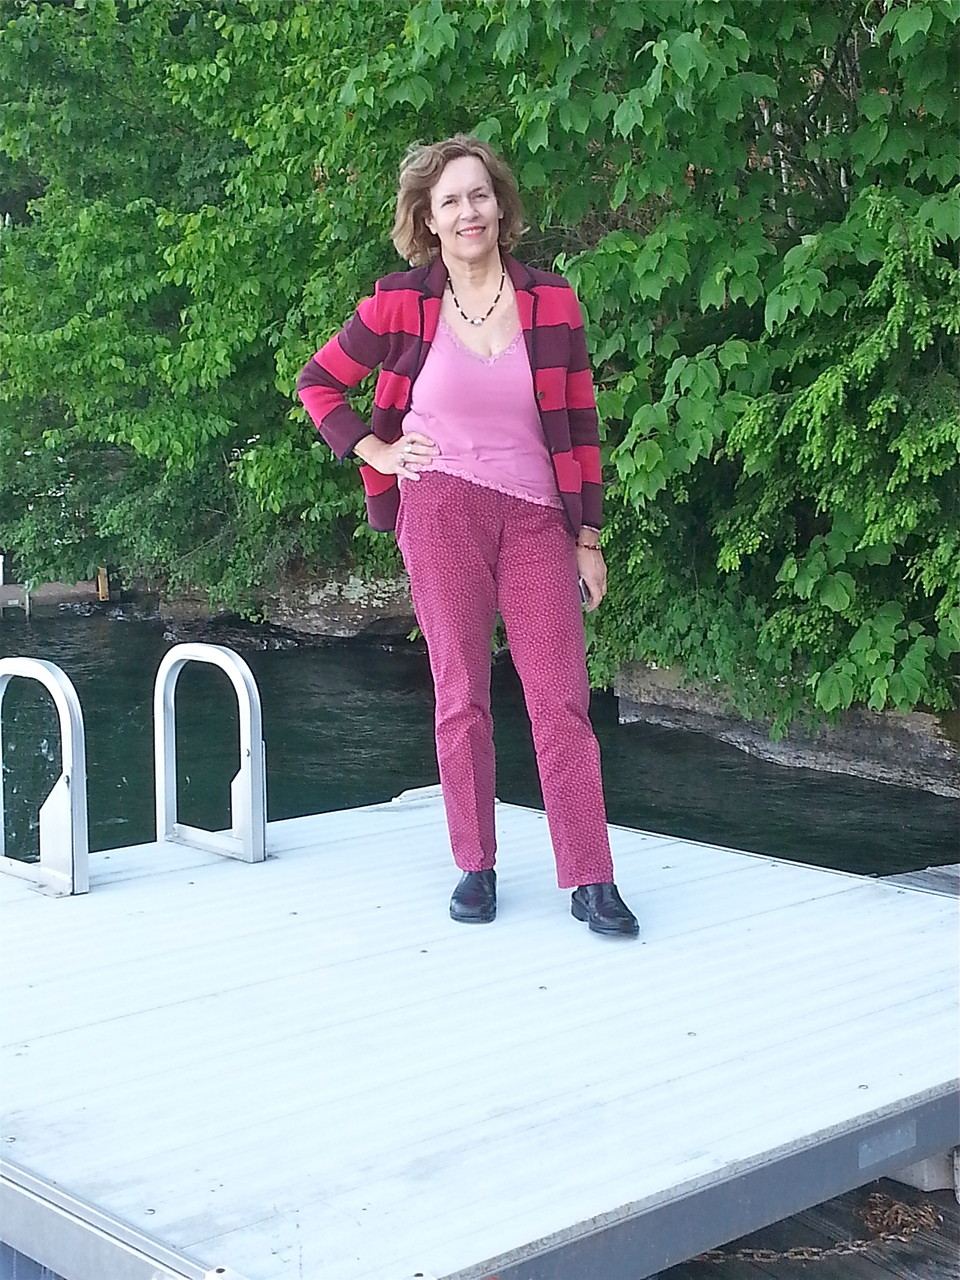 Lorraine at the lake before the reunion, June 21, 2014